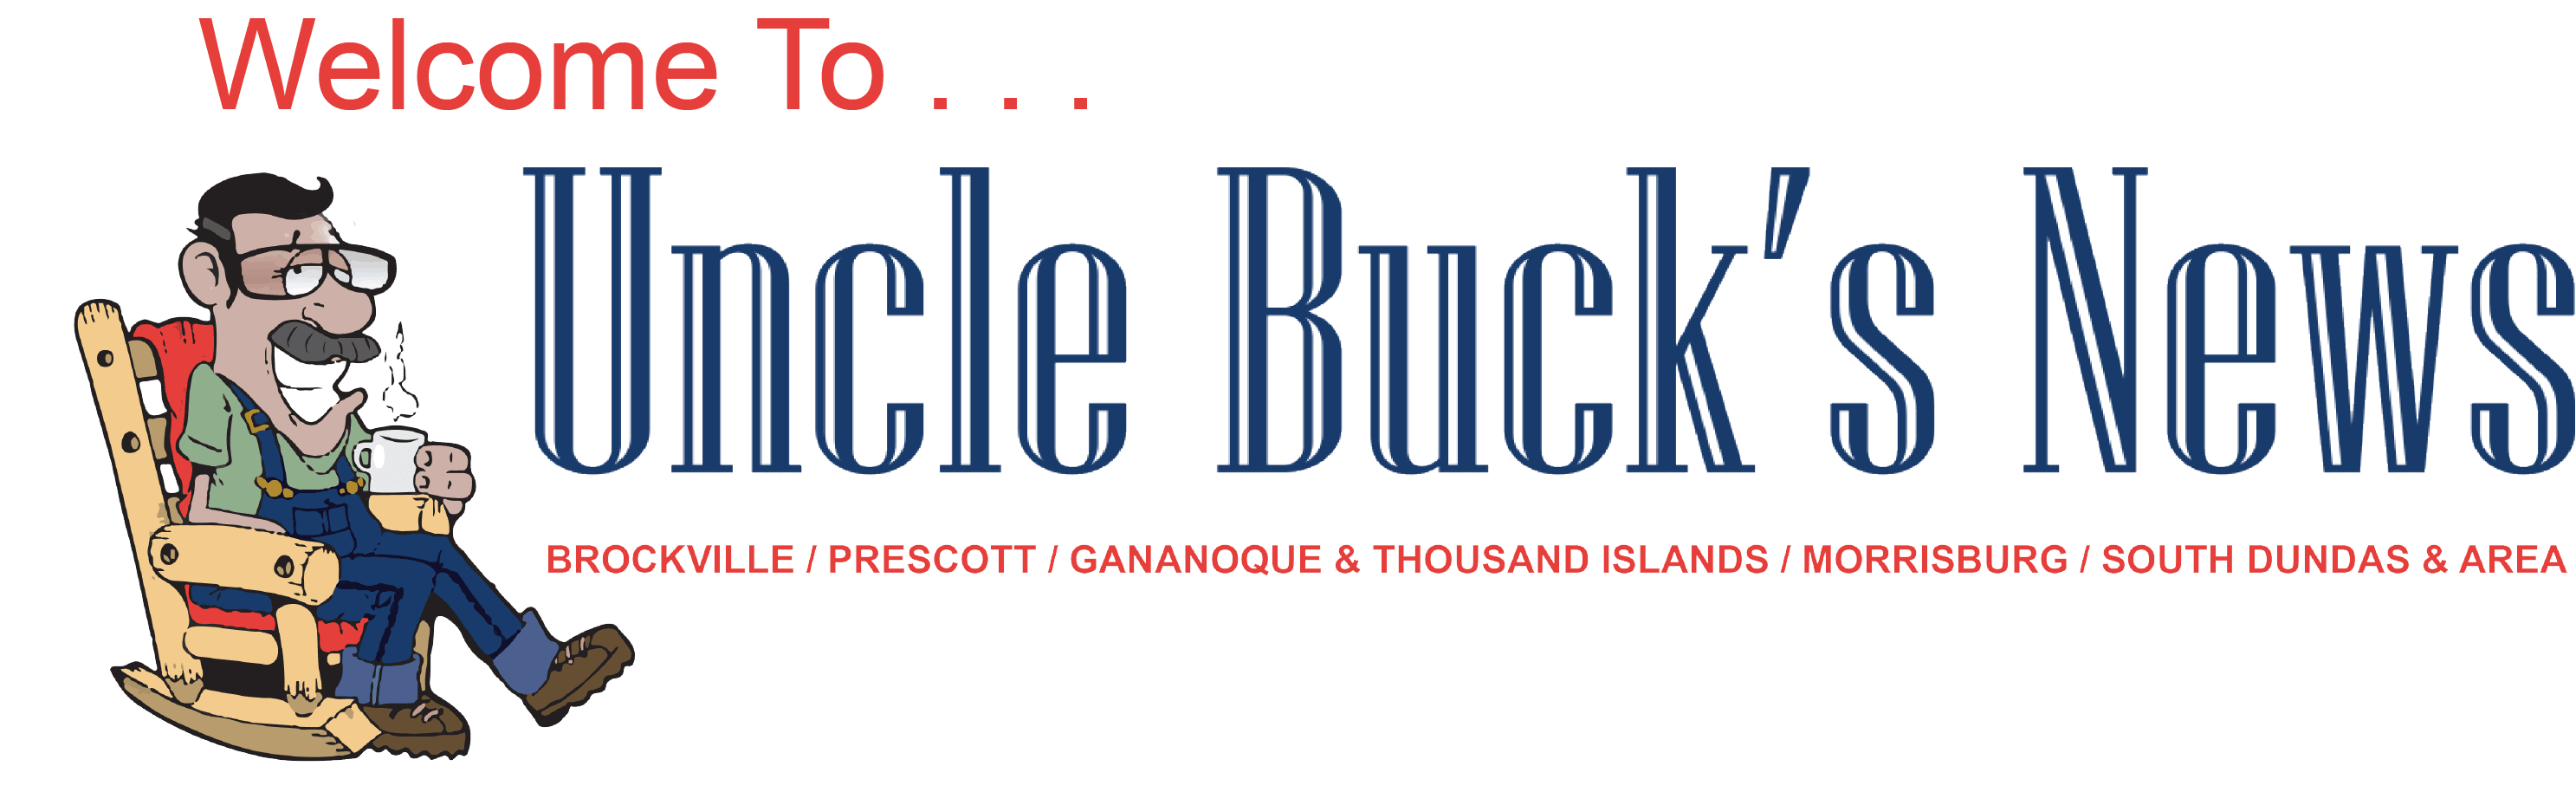 Unclue Buck's News